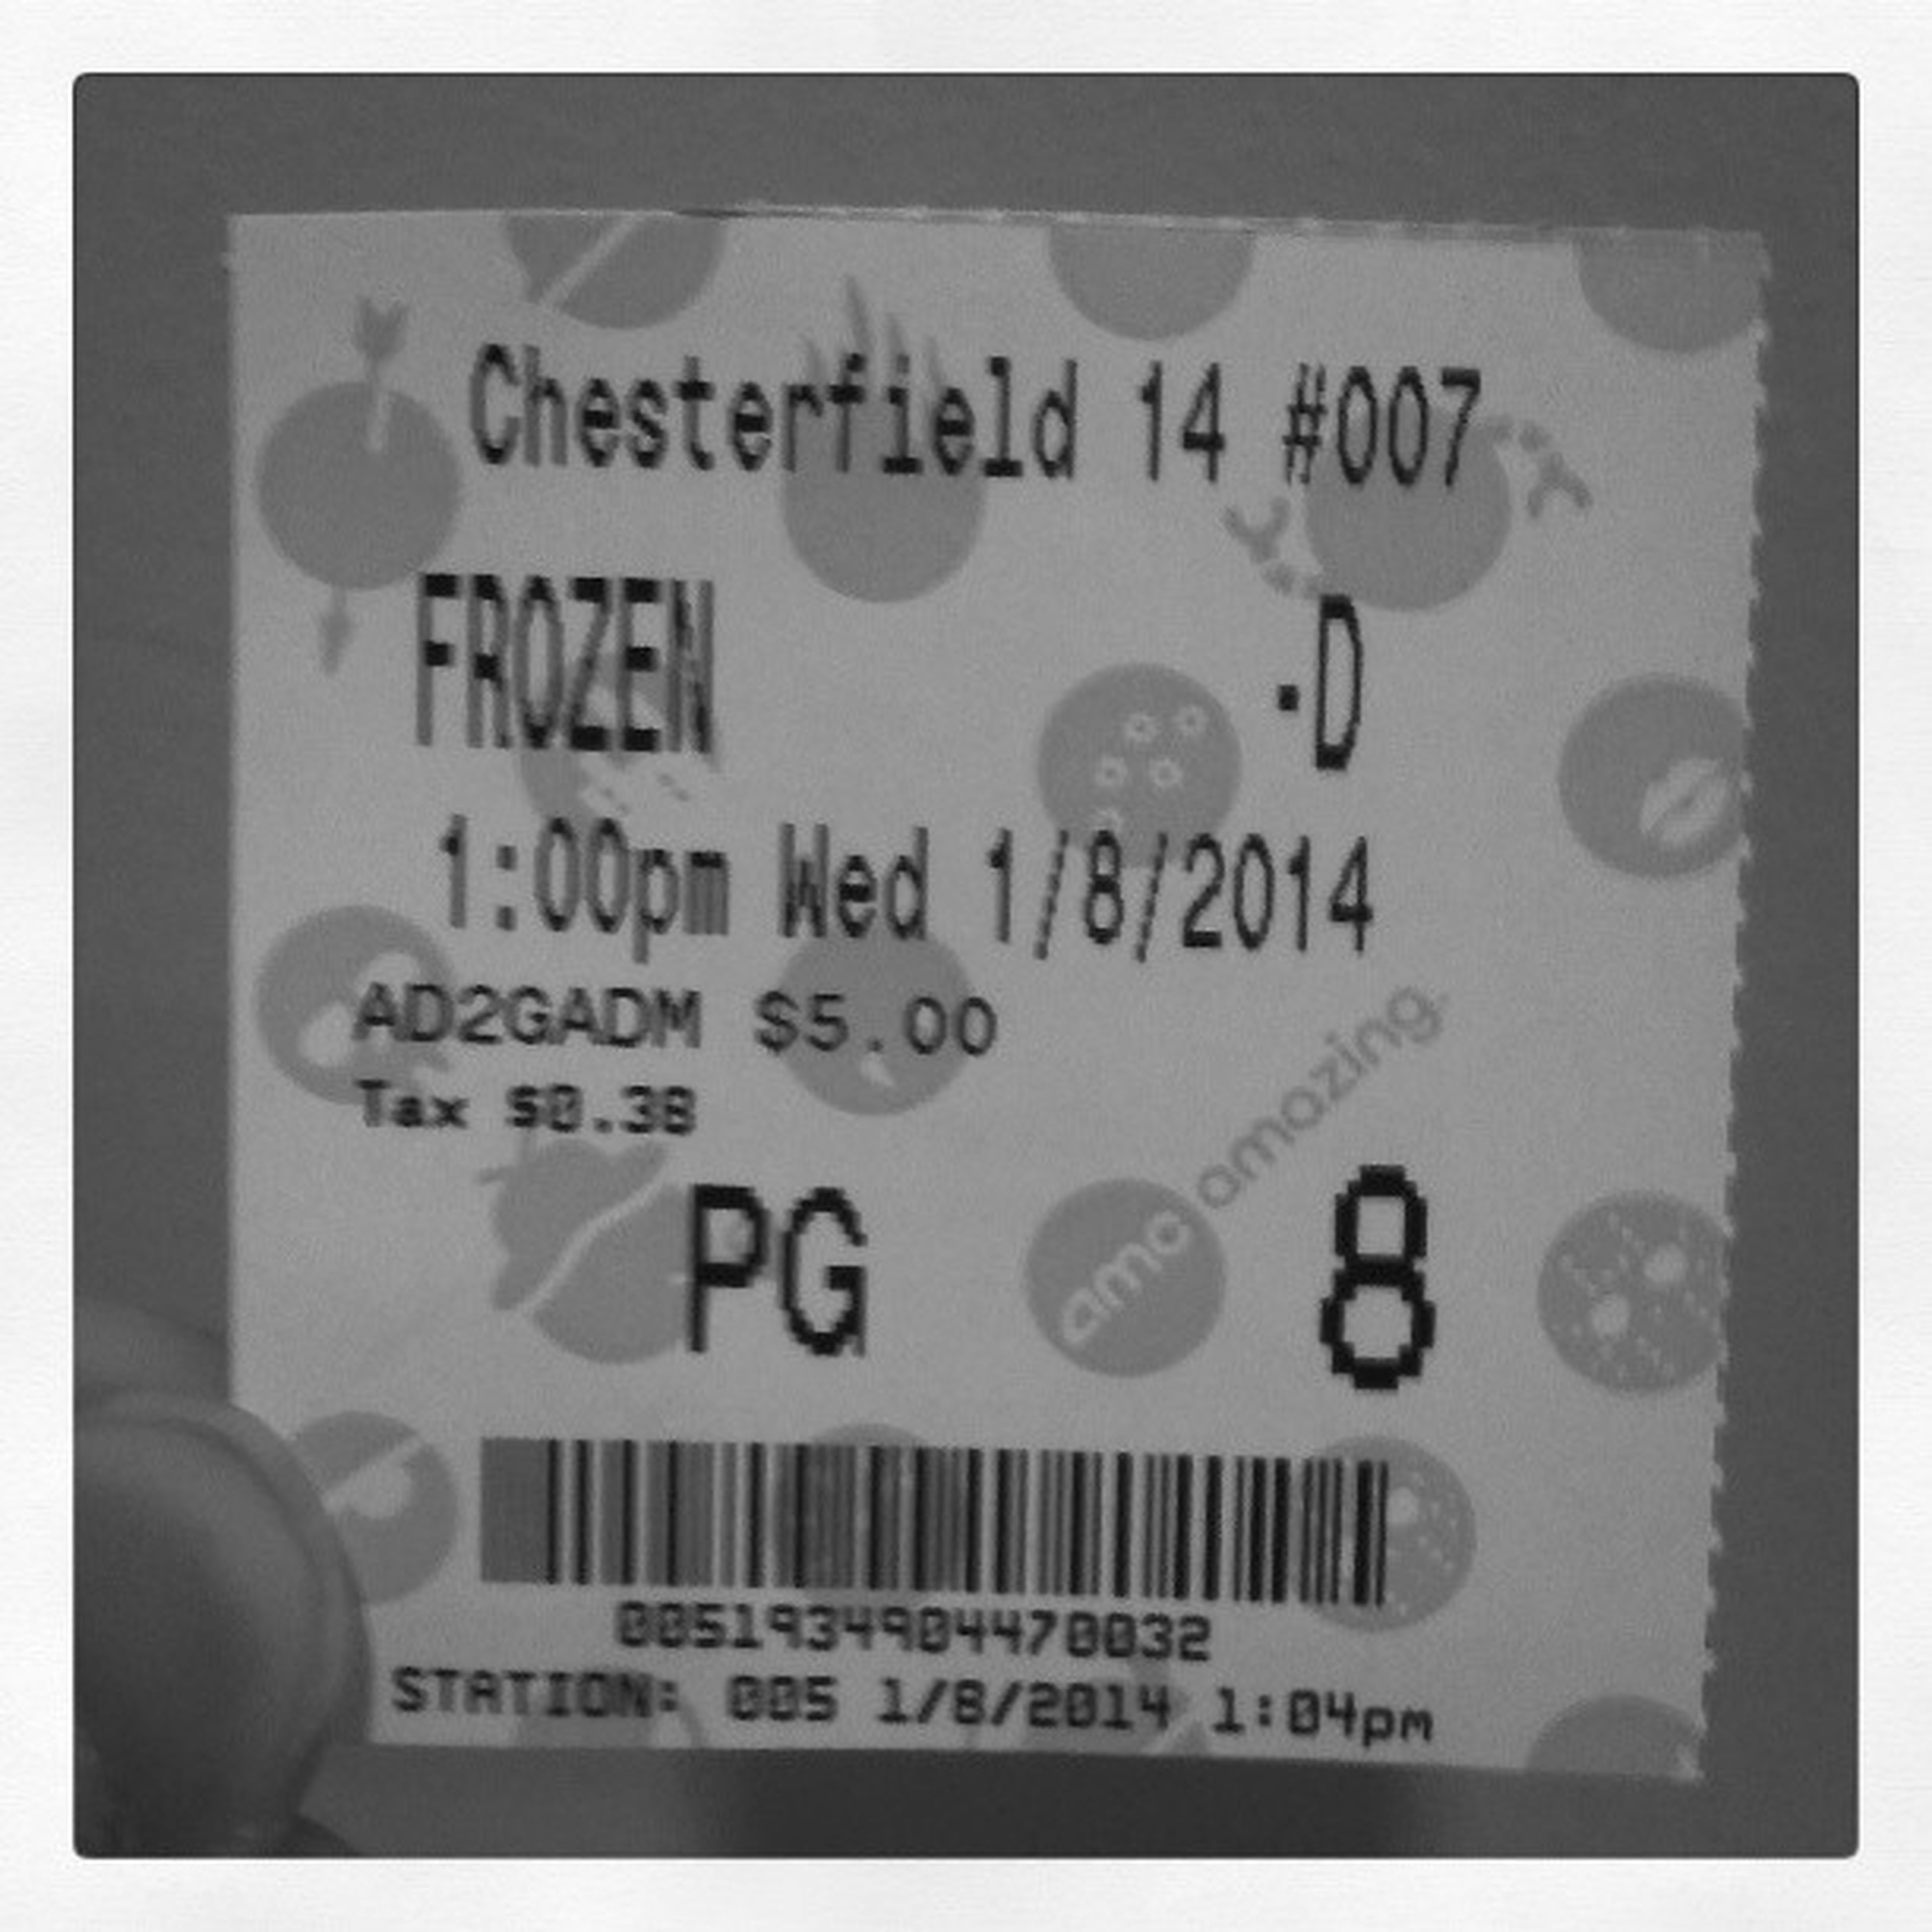 Let's see what all the hype is about. Treatyoself Emphasisonyoself Imtheonlyadulthere Popcornwillneverletmedown